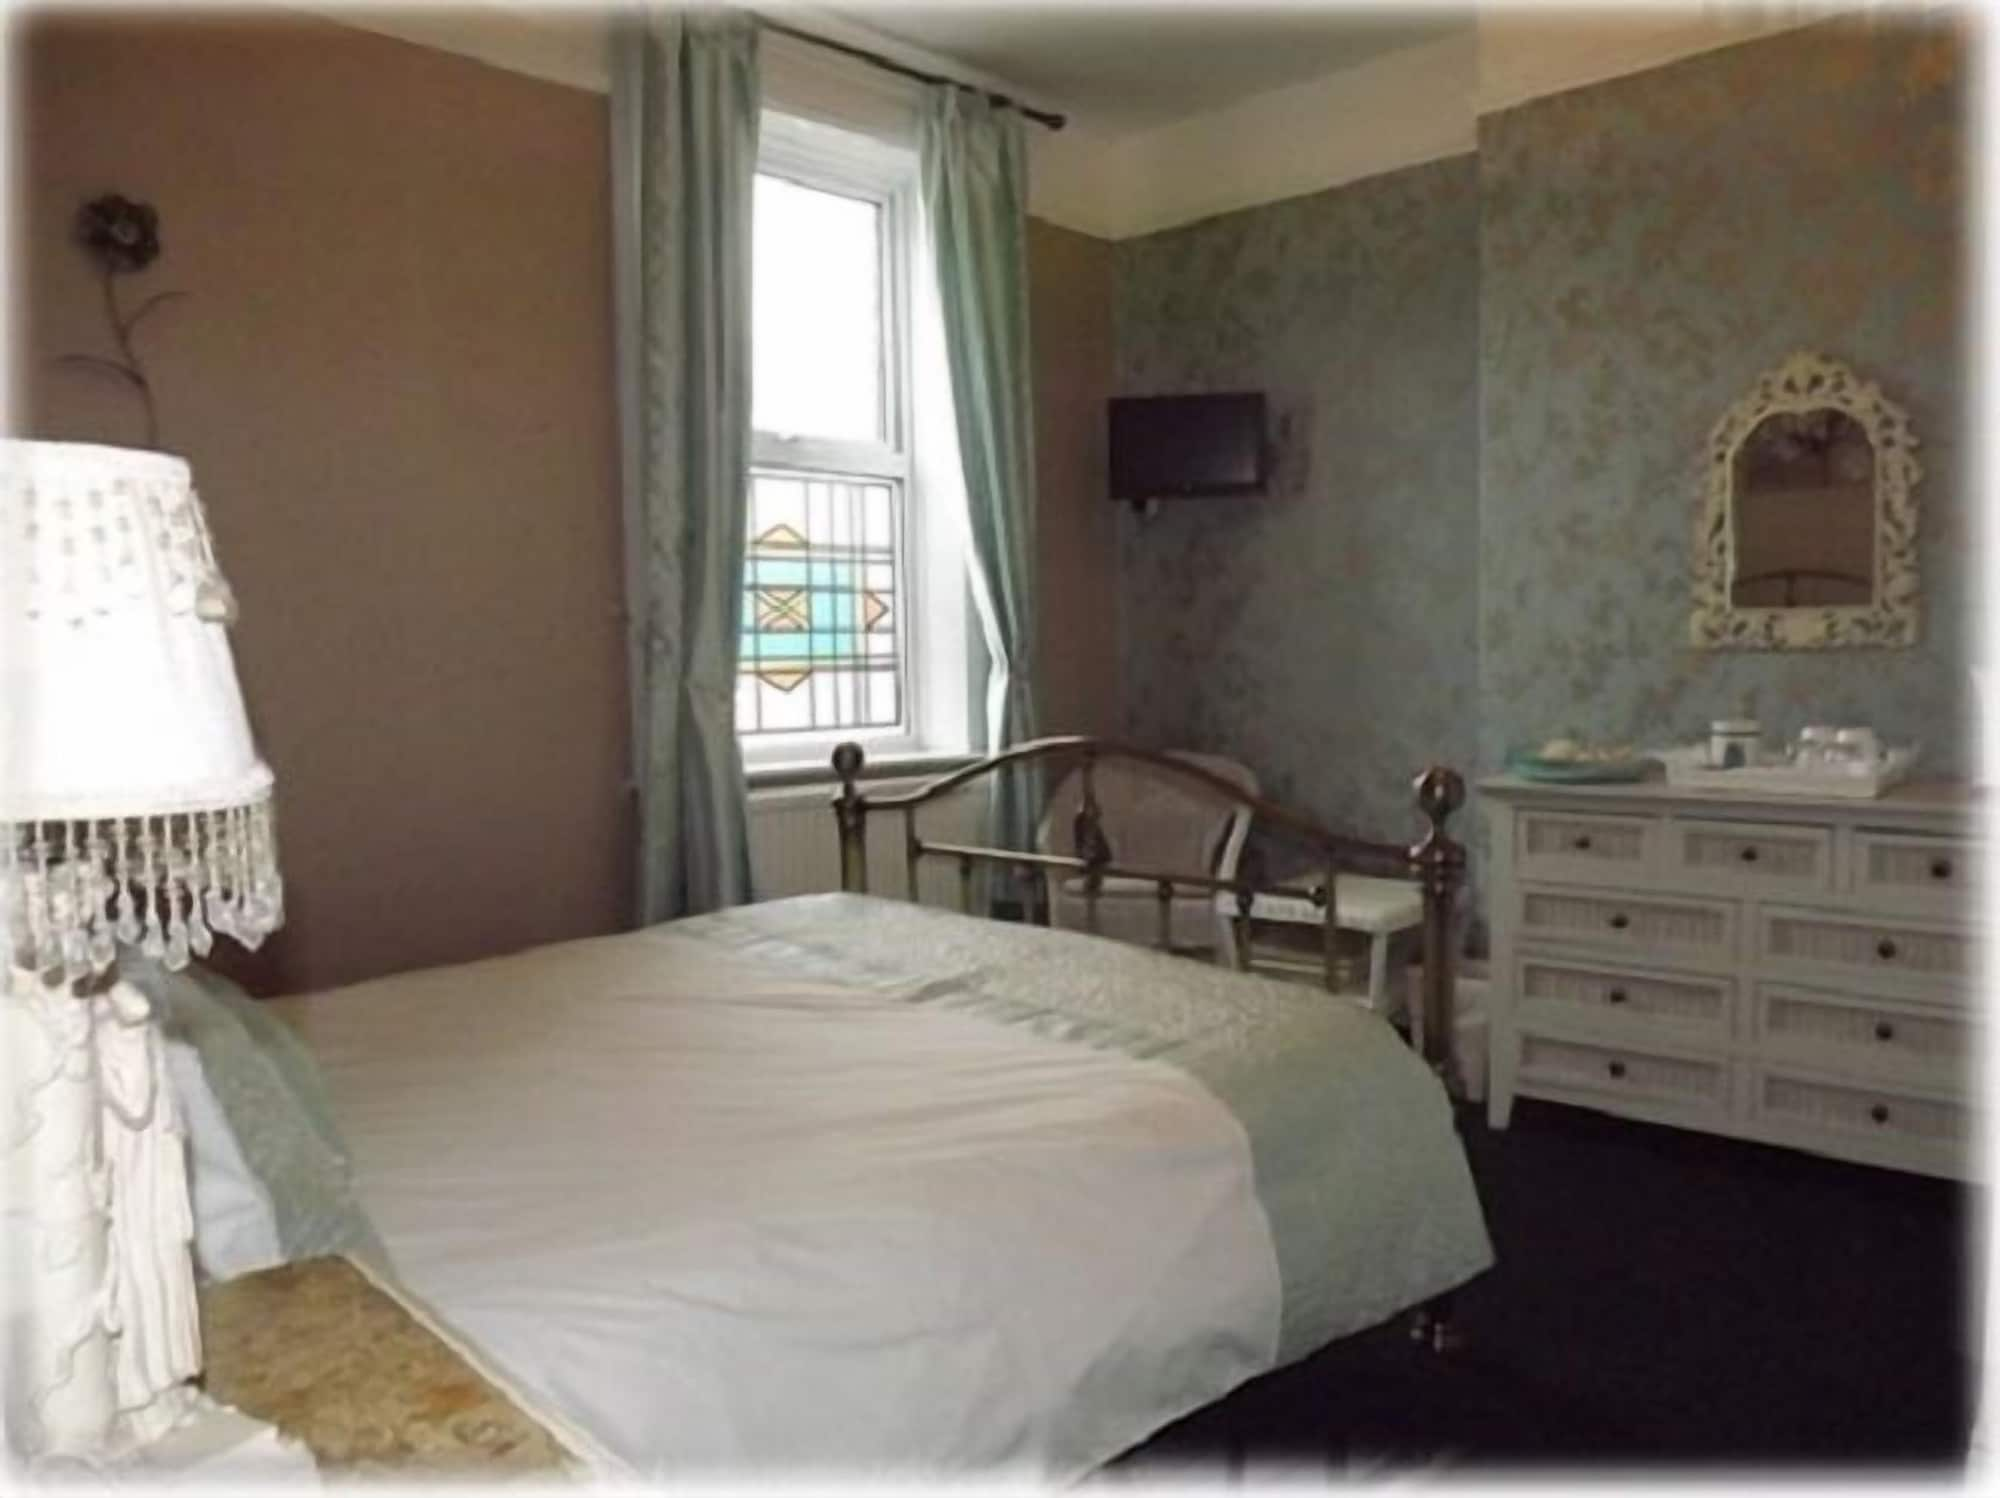 Manor View Guest House, North Yorkshire